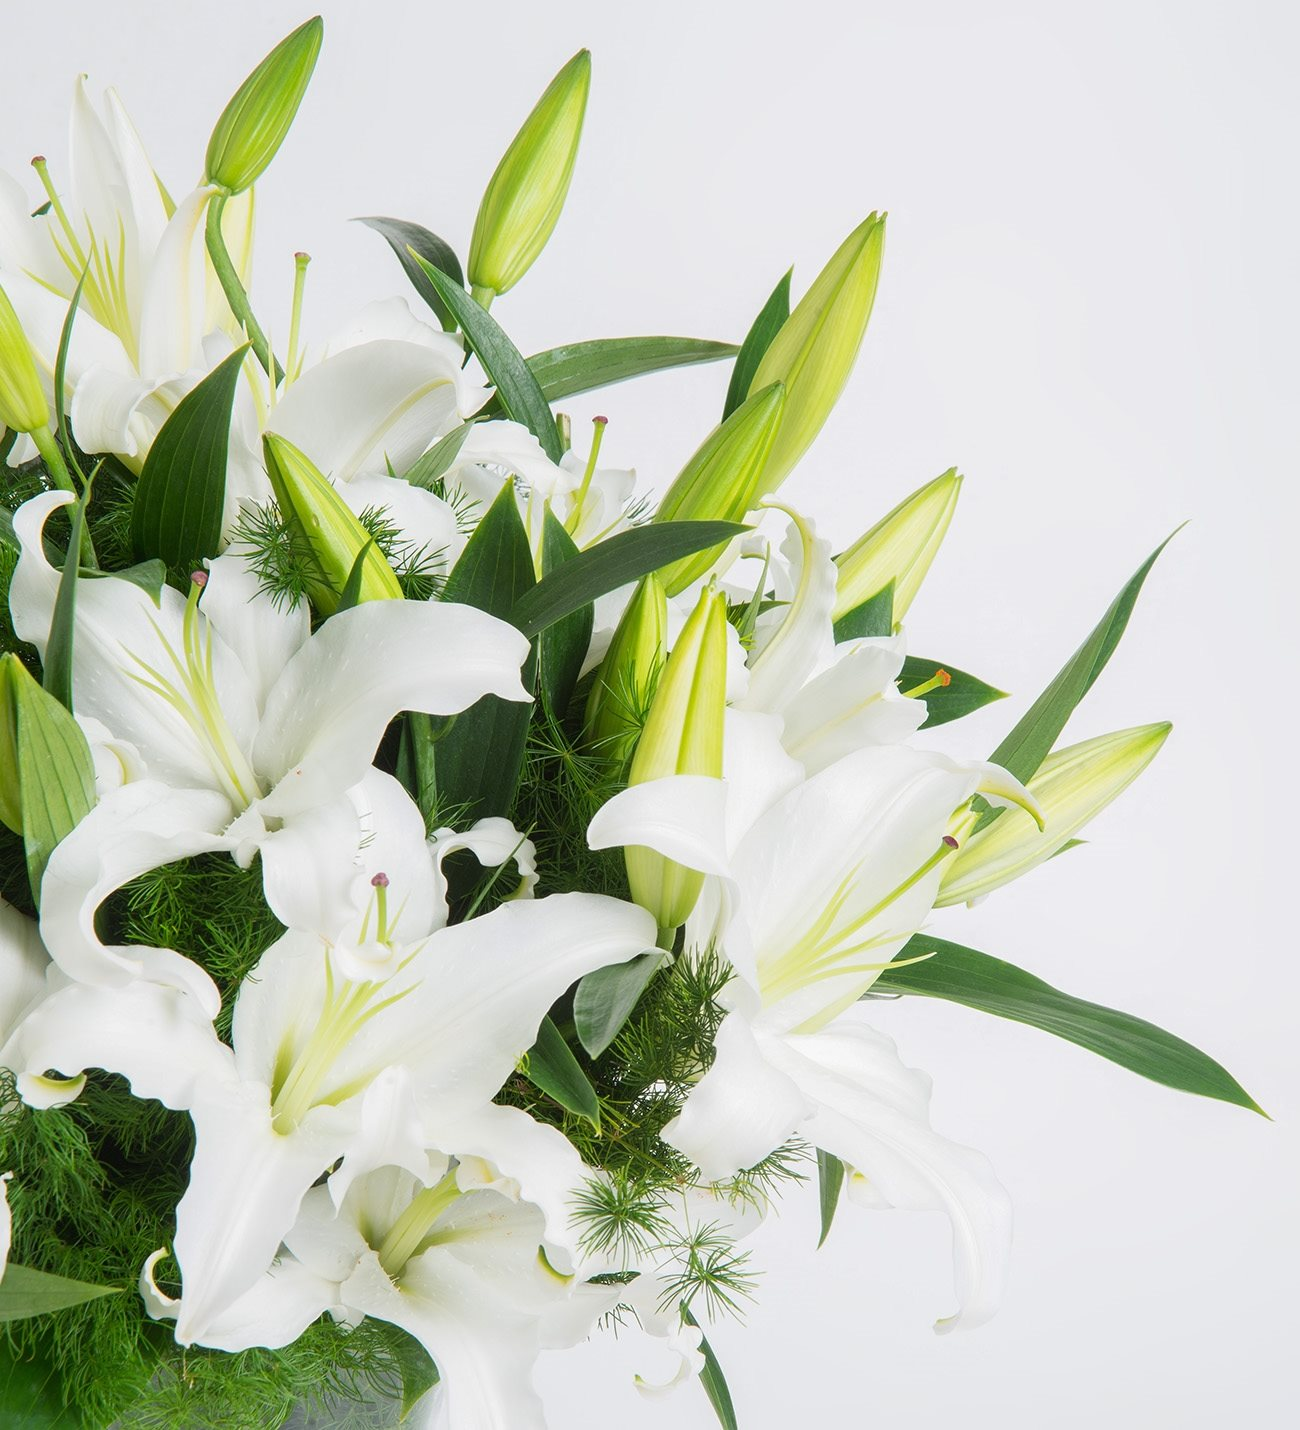 White lilies charming jewel izmirmasajfo